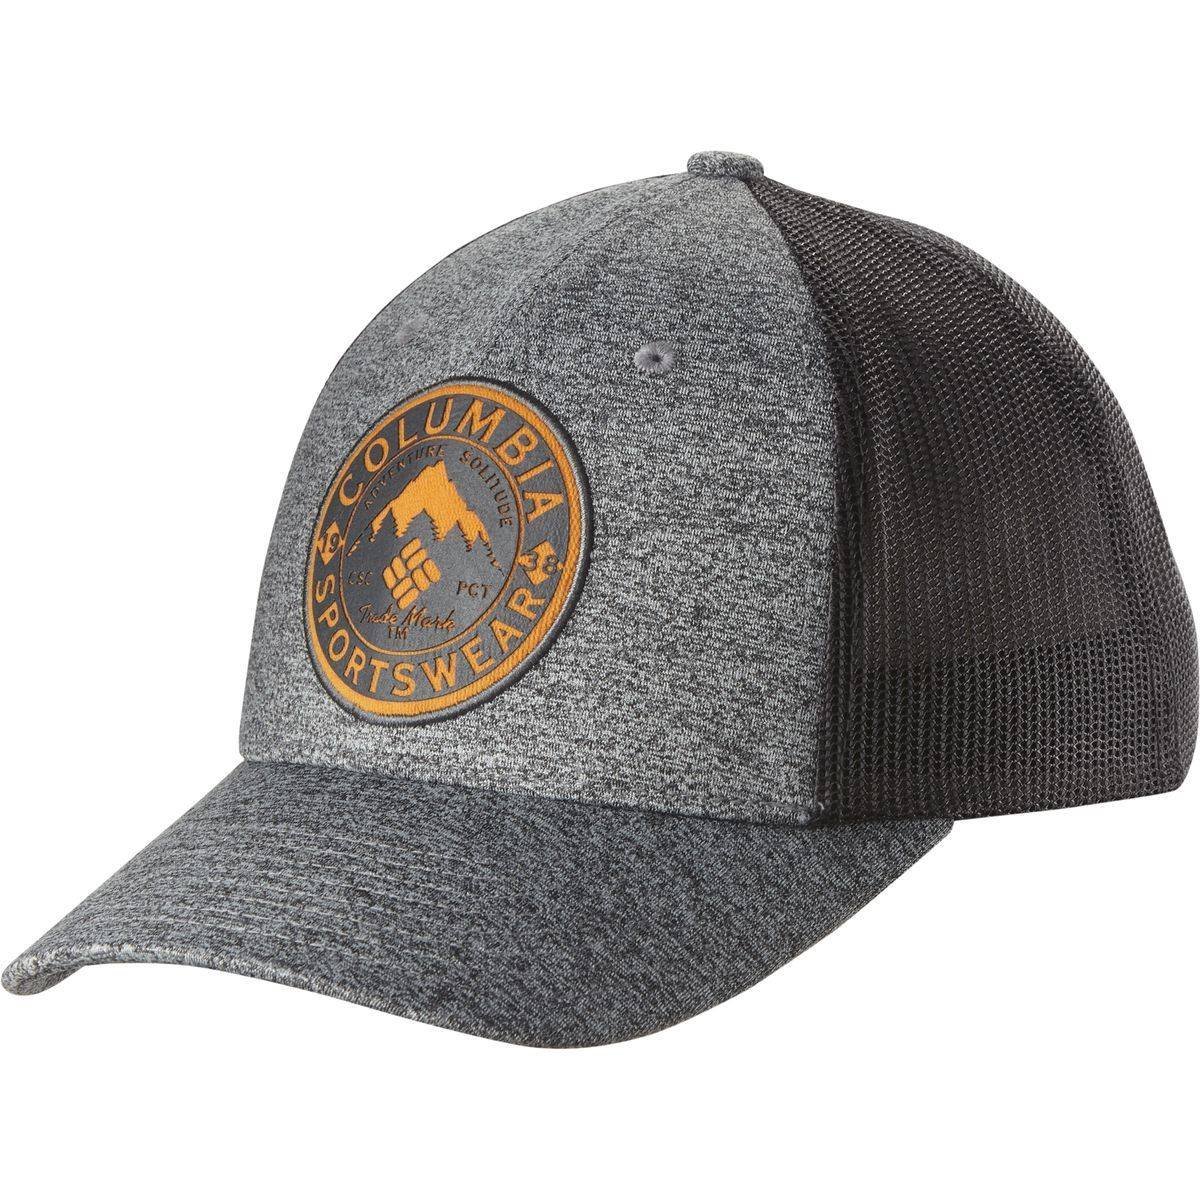 9c51451b36e Columbia Mesh Trucker Hat Grey Ash Heather Felt Patch